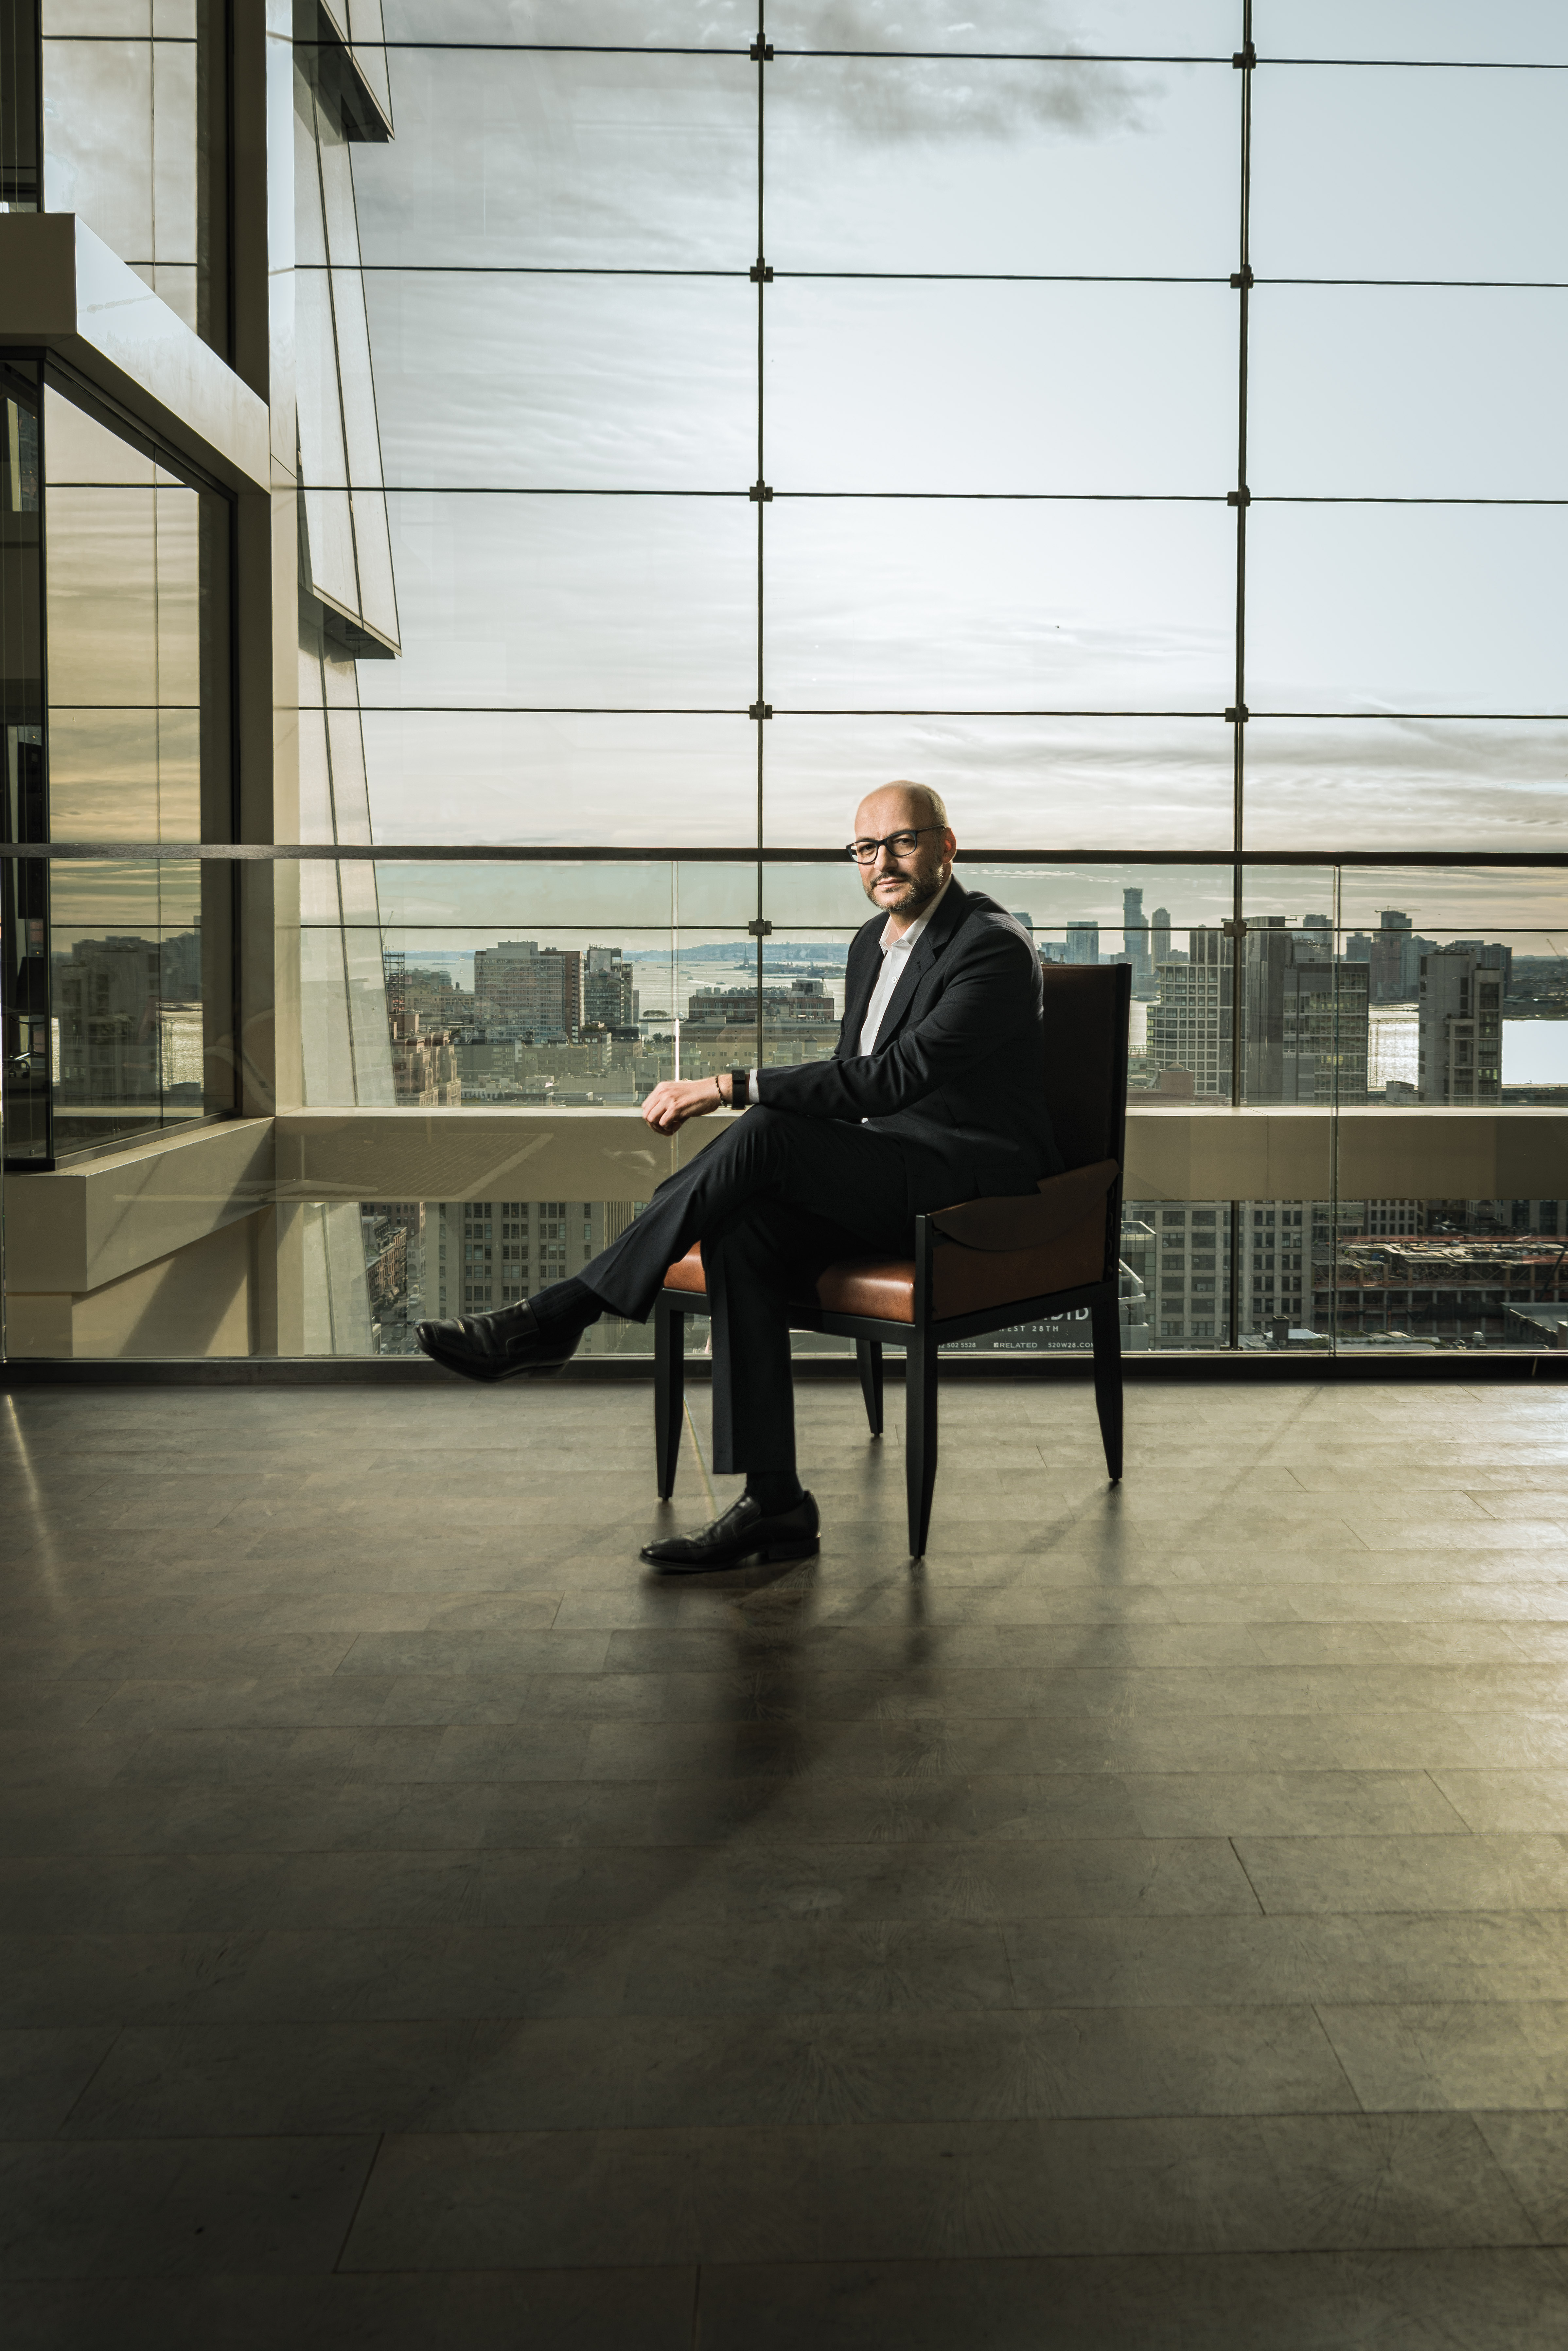 Victor Luis at coach's Hudson Yards headquarters in New York.